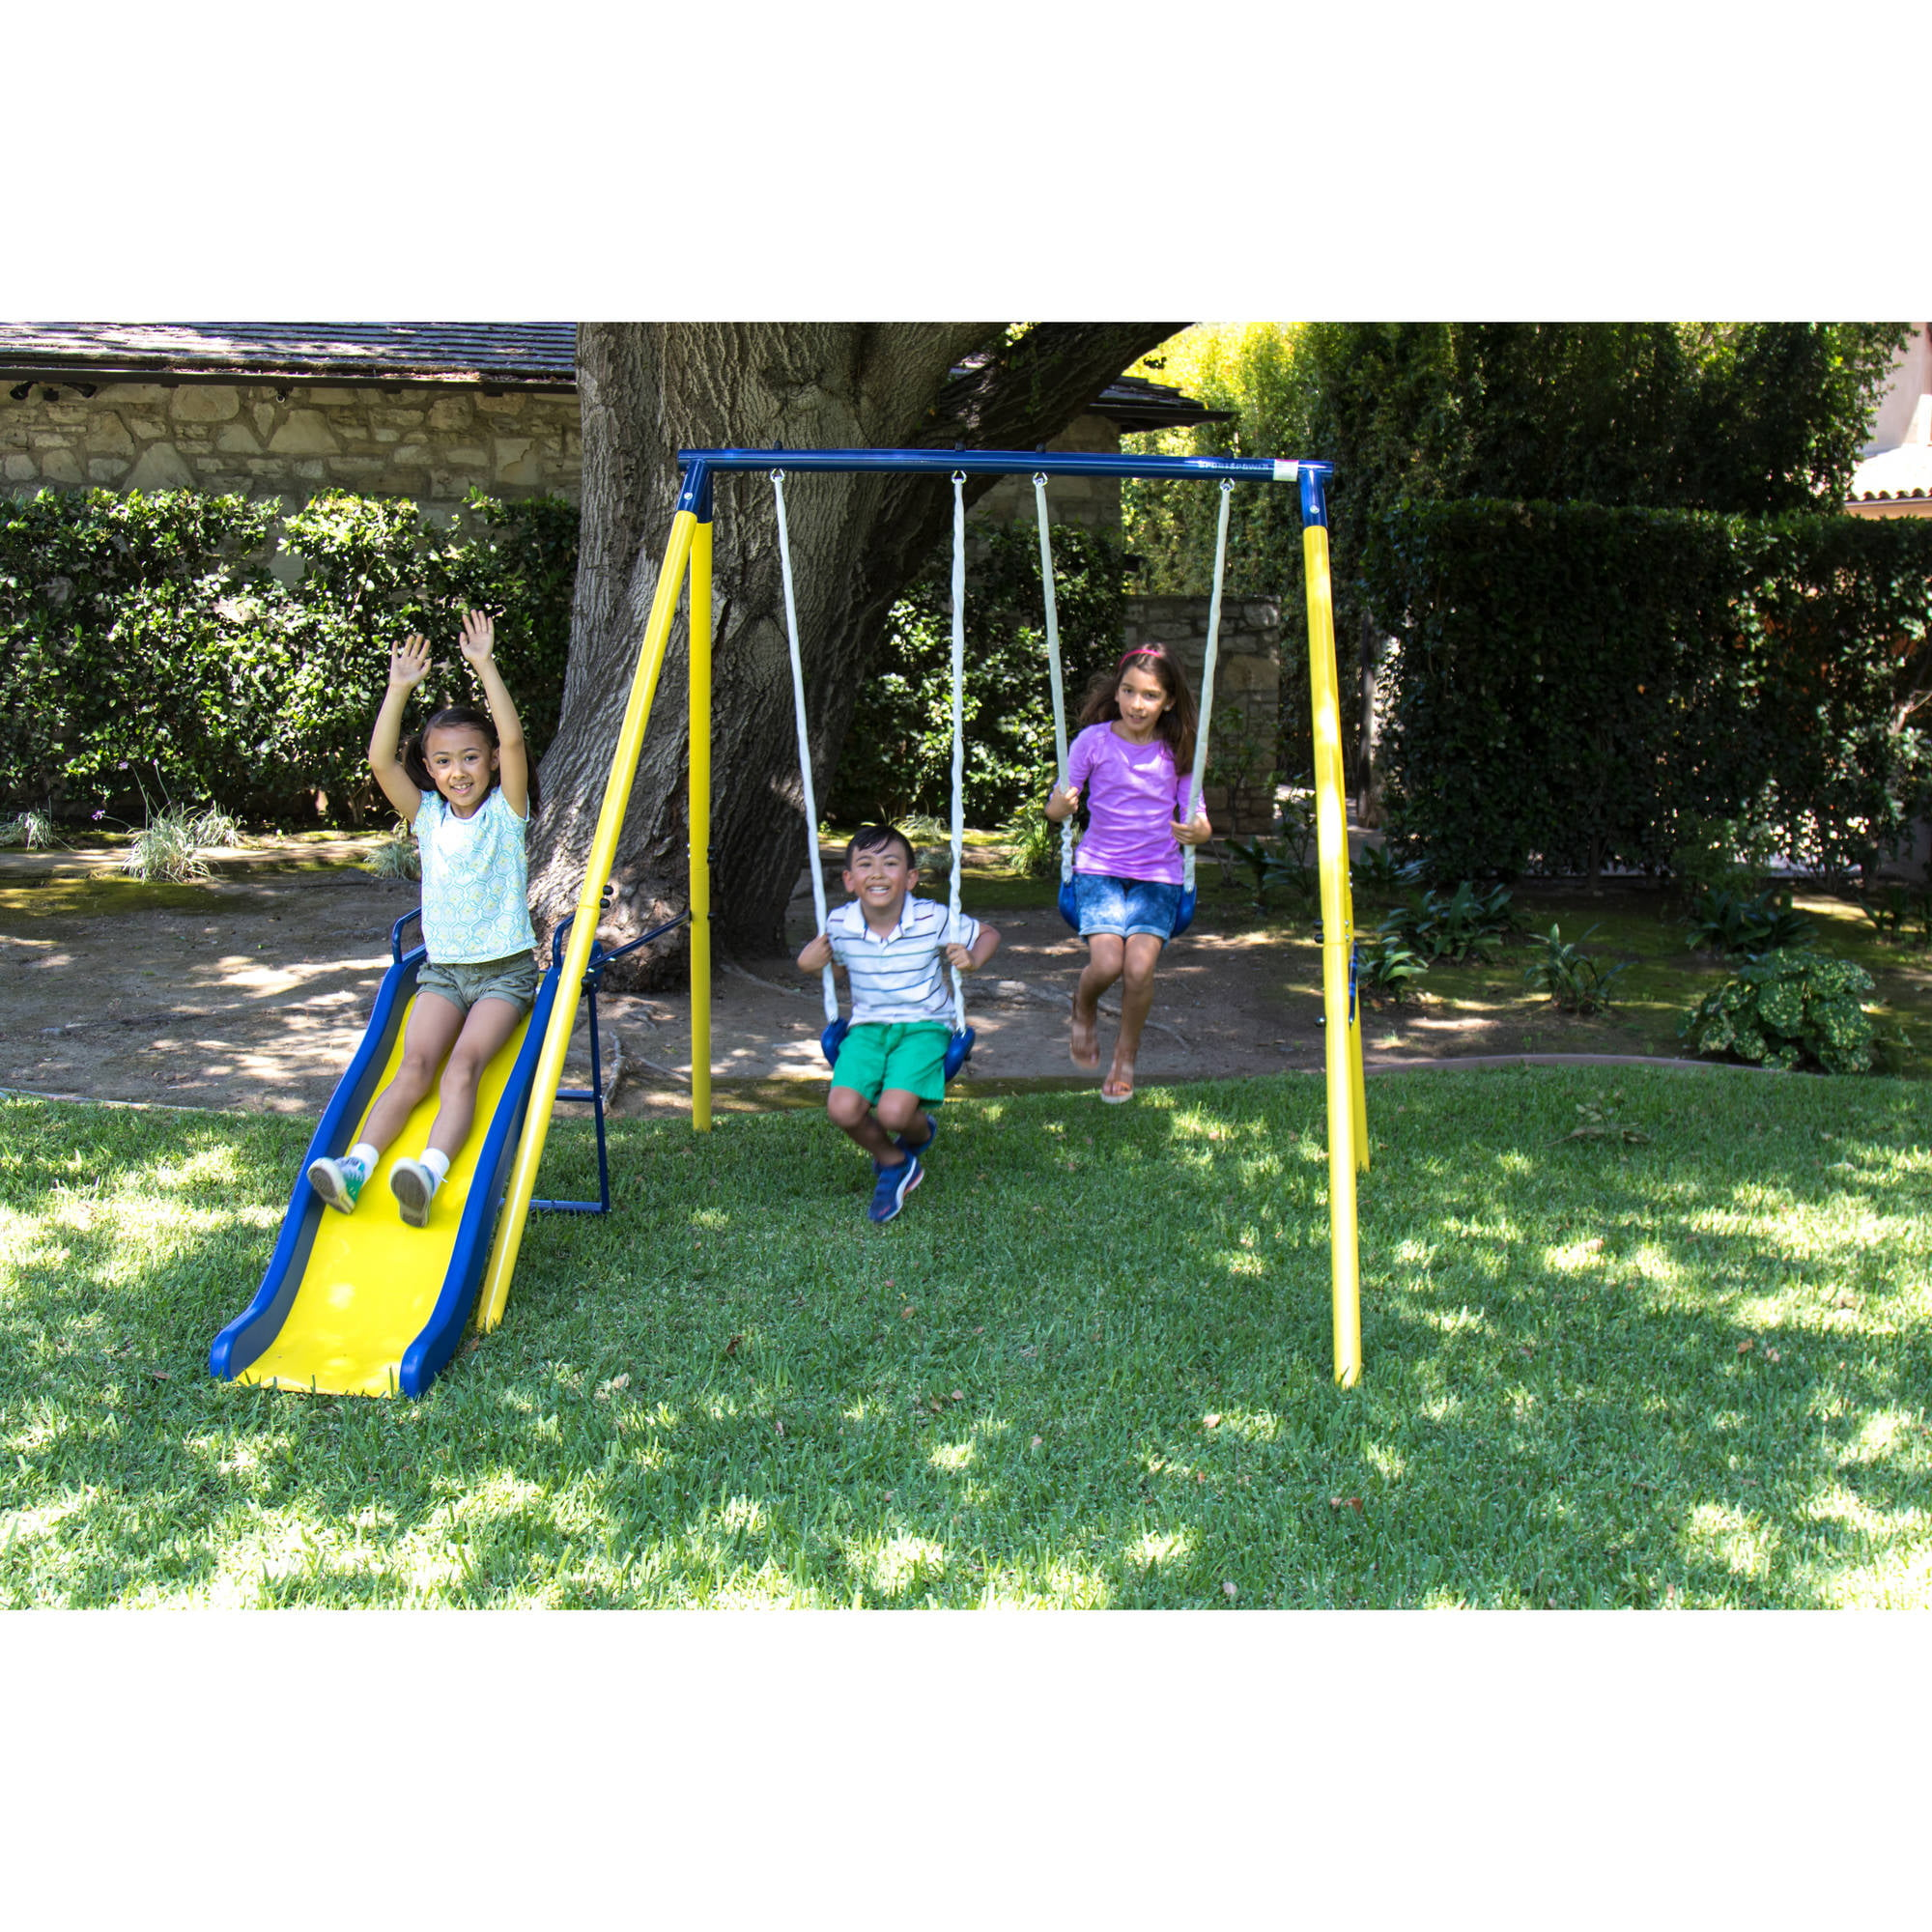 Outdoor Play Swing Set Backyard Playground Metal Swingset Kids Slide  Playset Fun